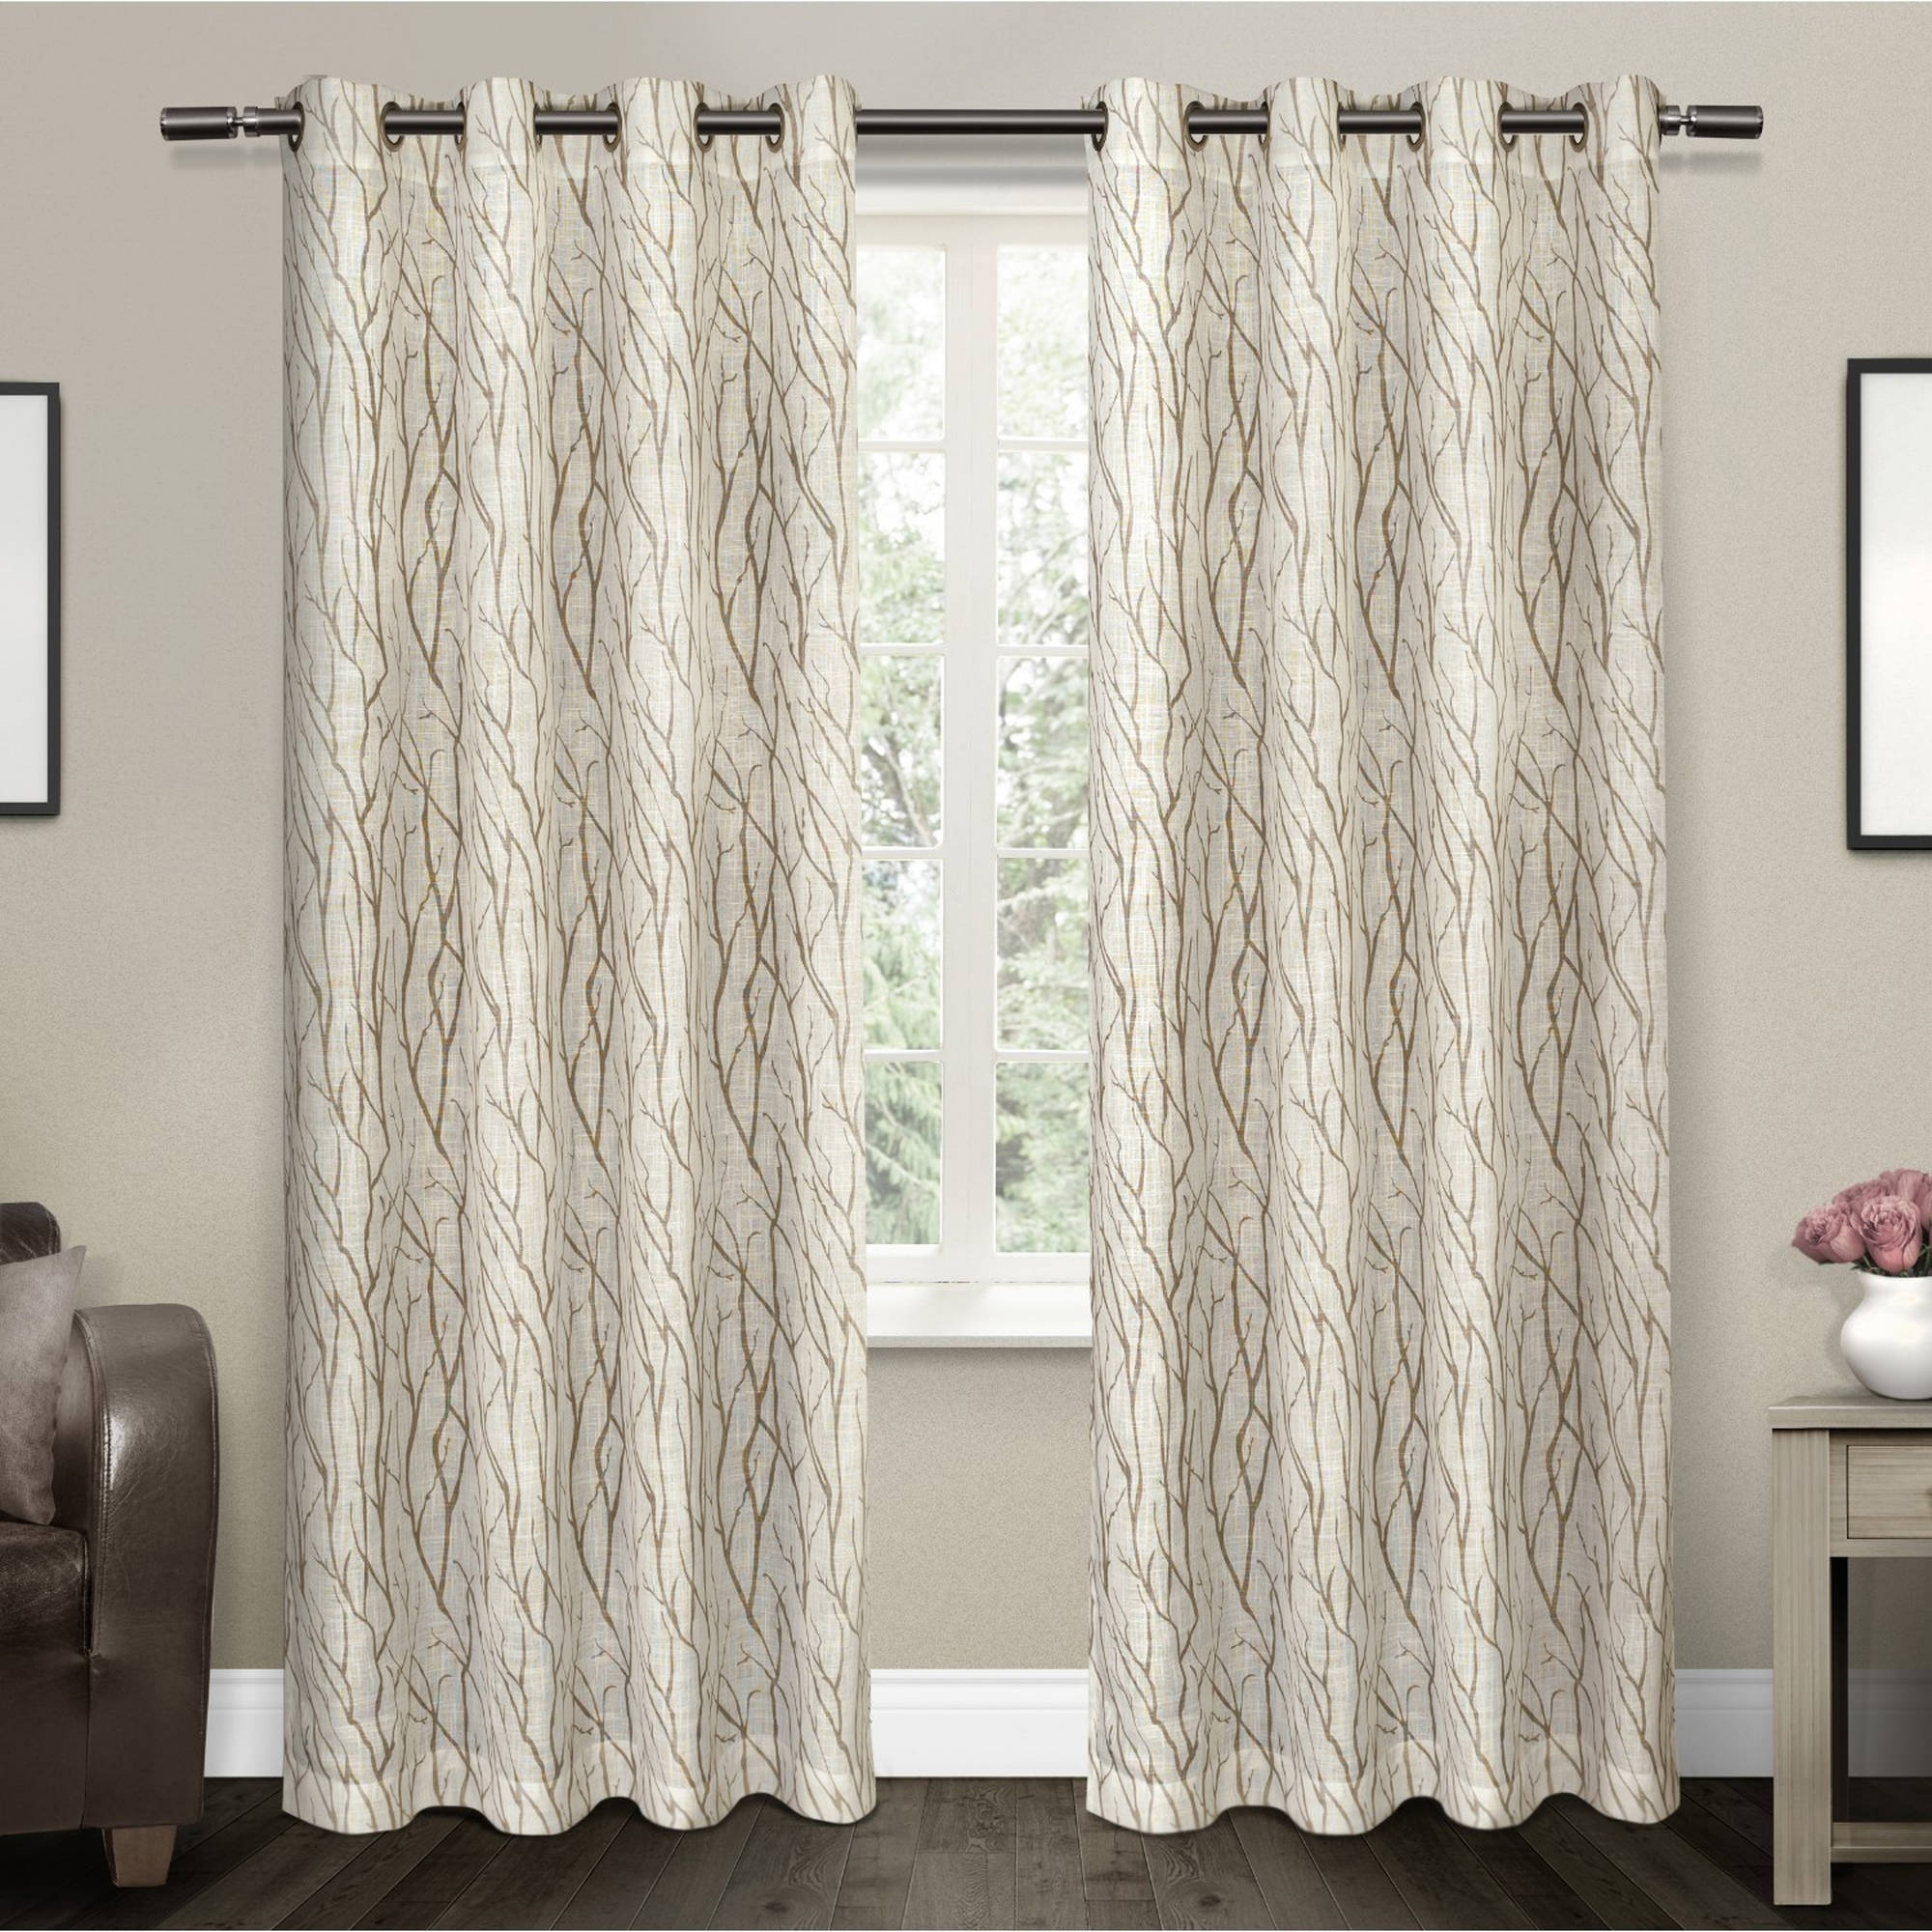 Grommet Top Curtains Regarding Inexpensive Curtains For Large Windows (Image 12 of 25)